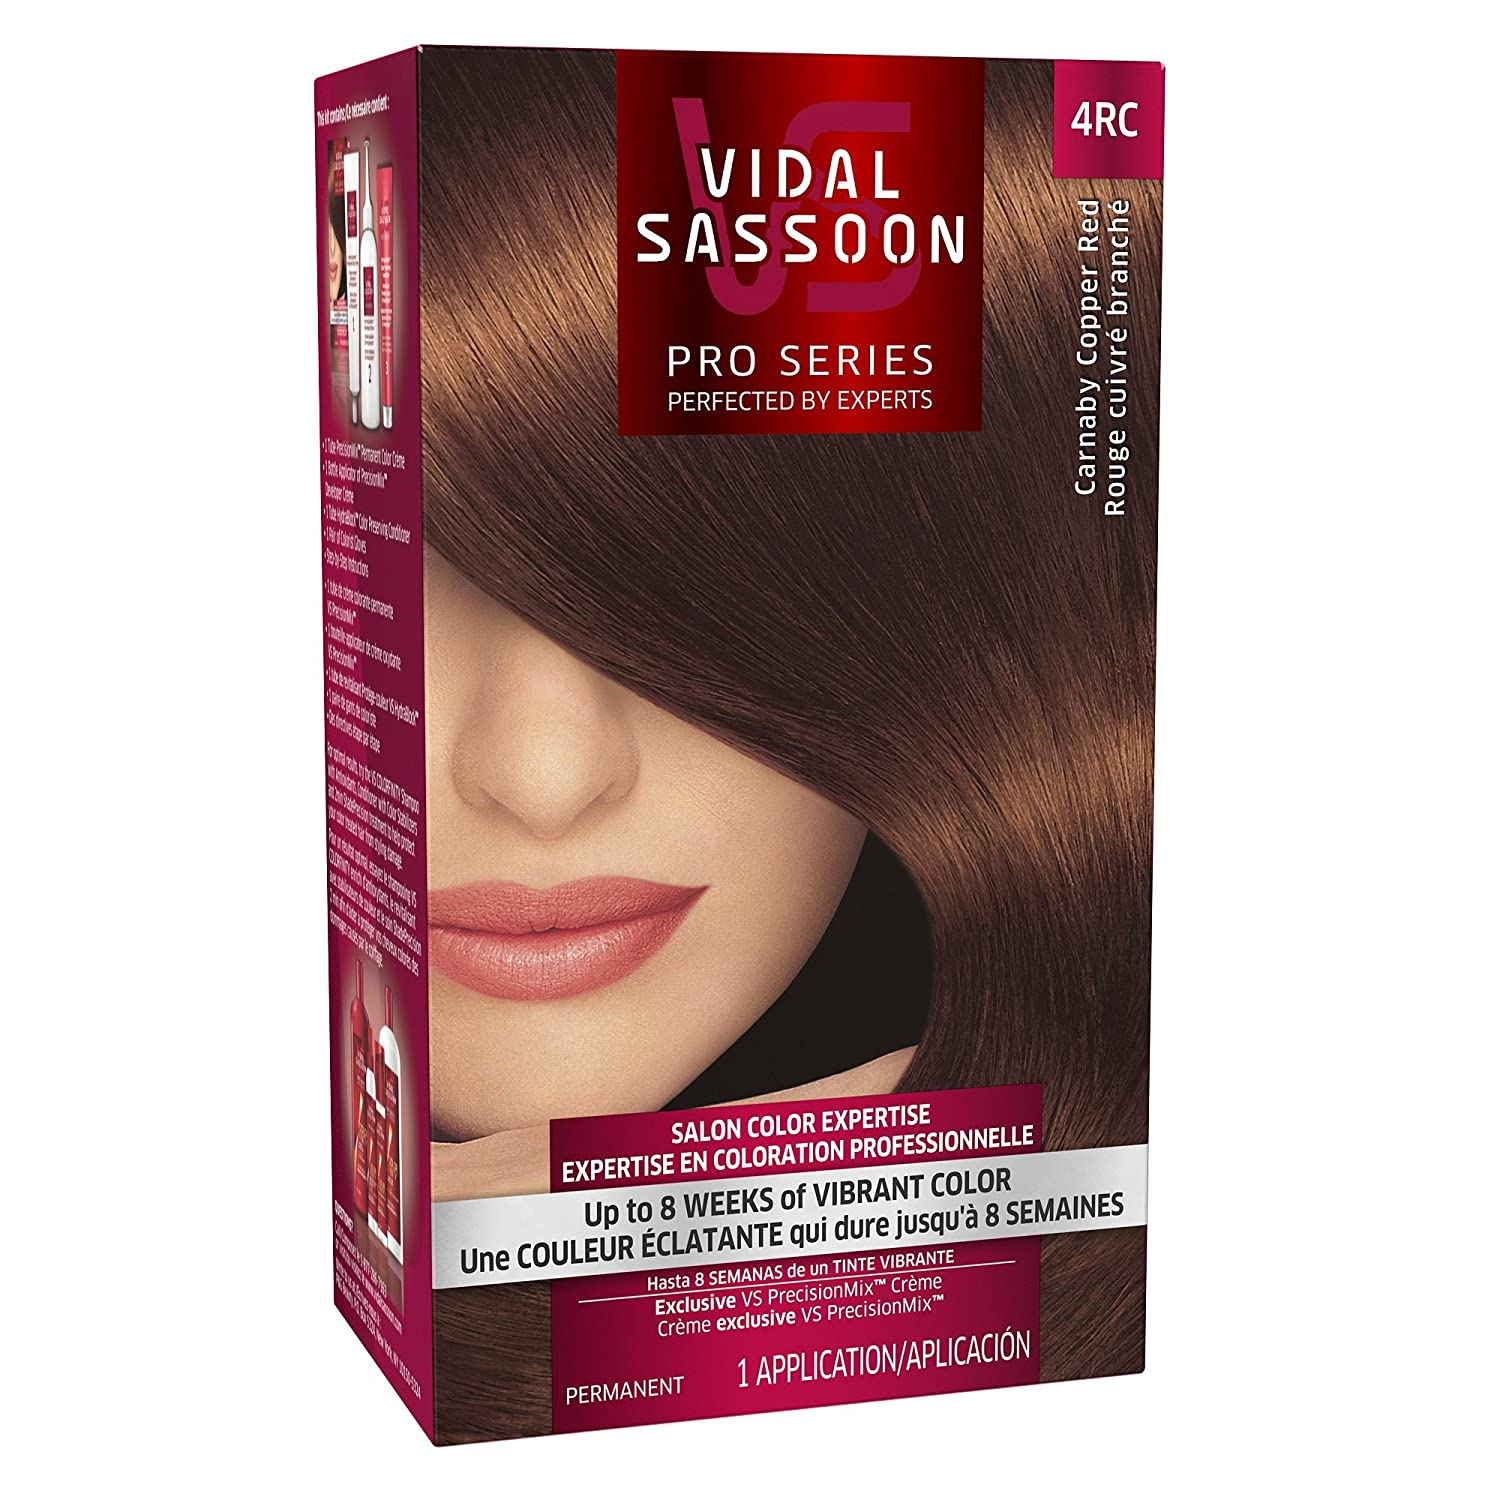 Vidal Sassoon Pro Series Hair Color Kit 1 Red Dark Recommendation 4RC Max 46% OFF Copper